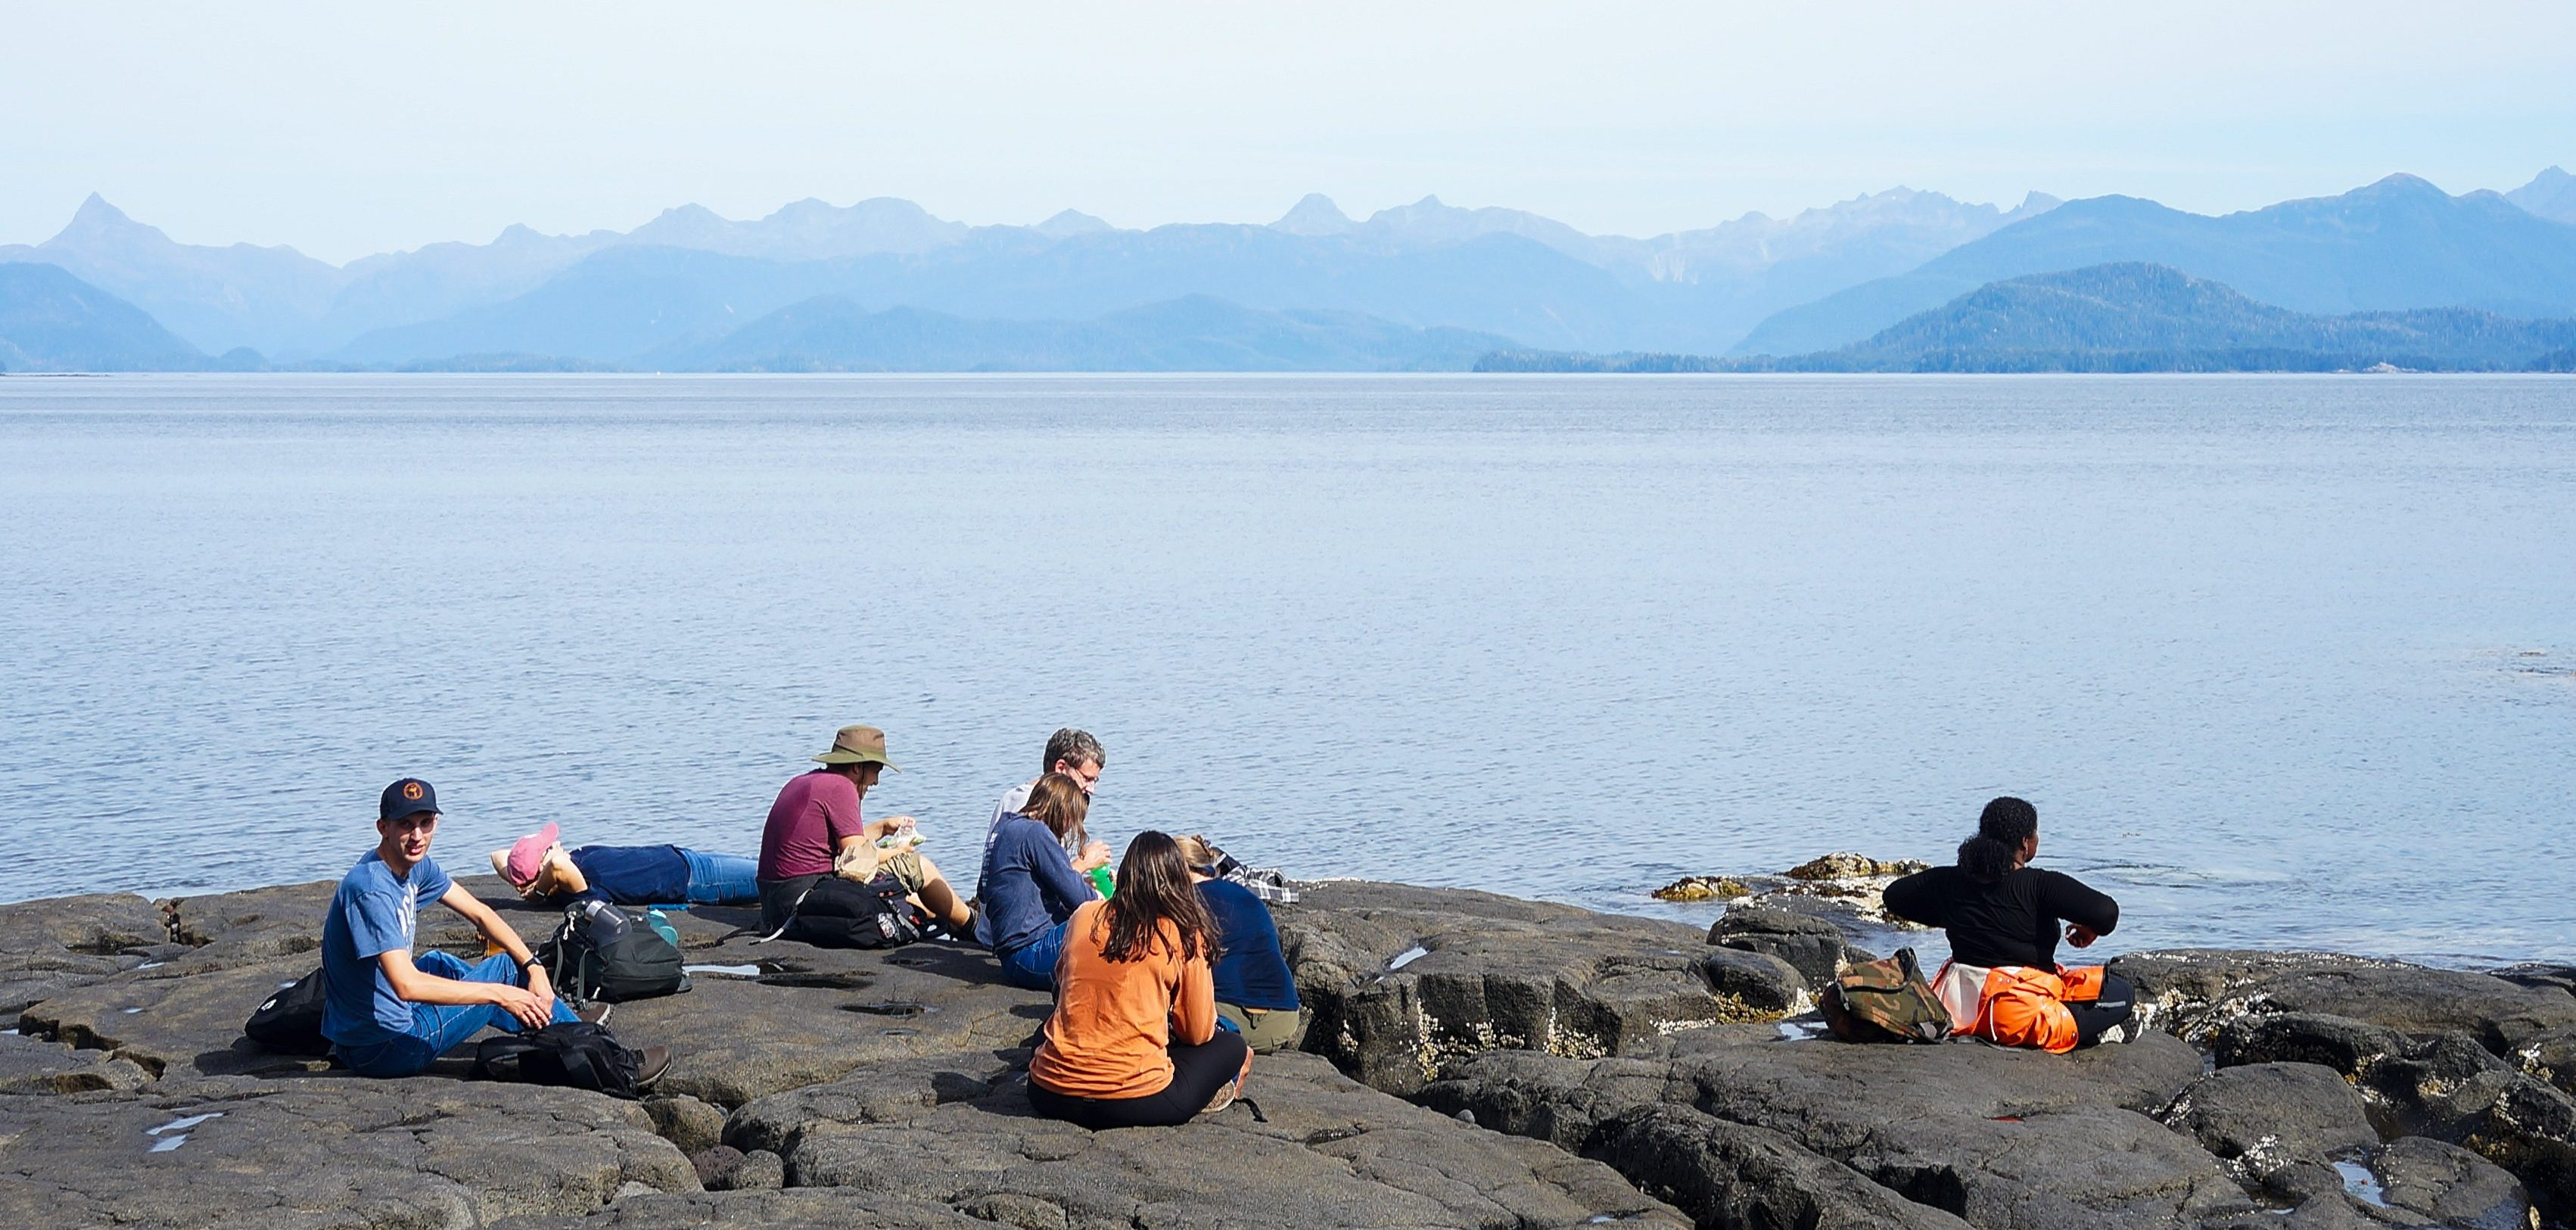 Image shows students sitting on a stark, rocky shore, overlooking a bay with mountains shrouded in fog on the opposite shore